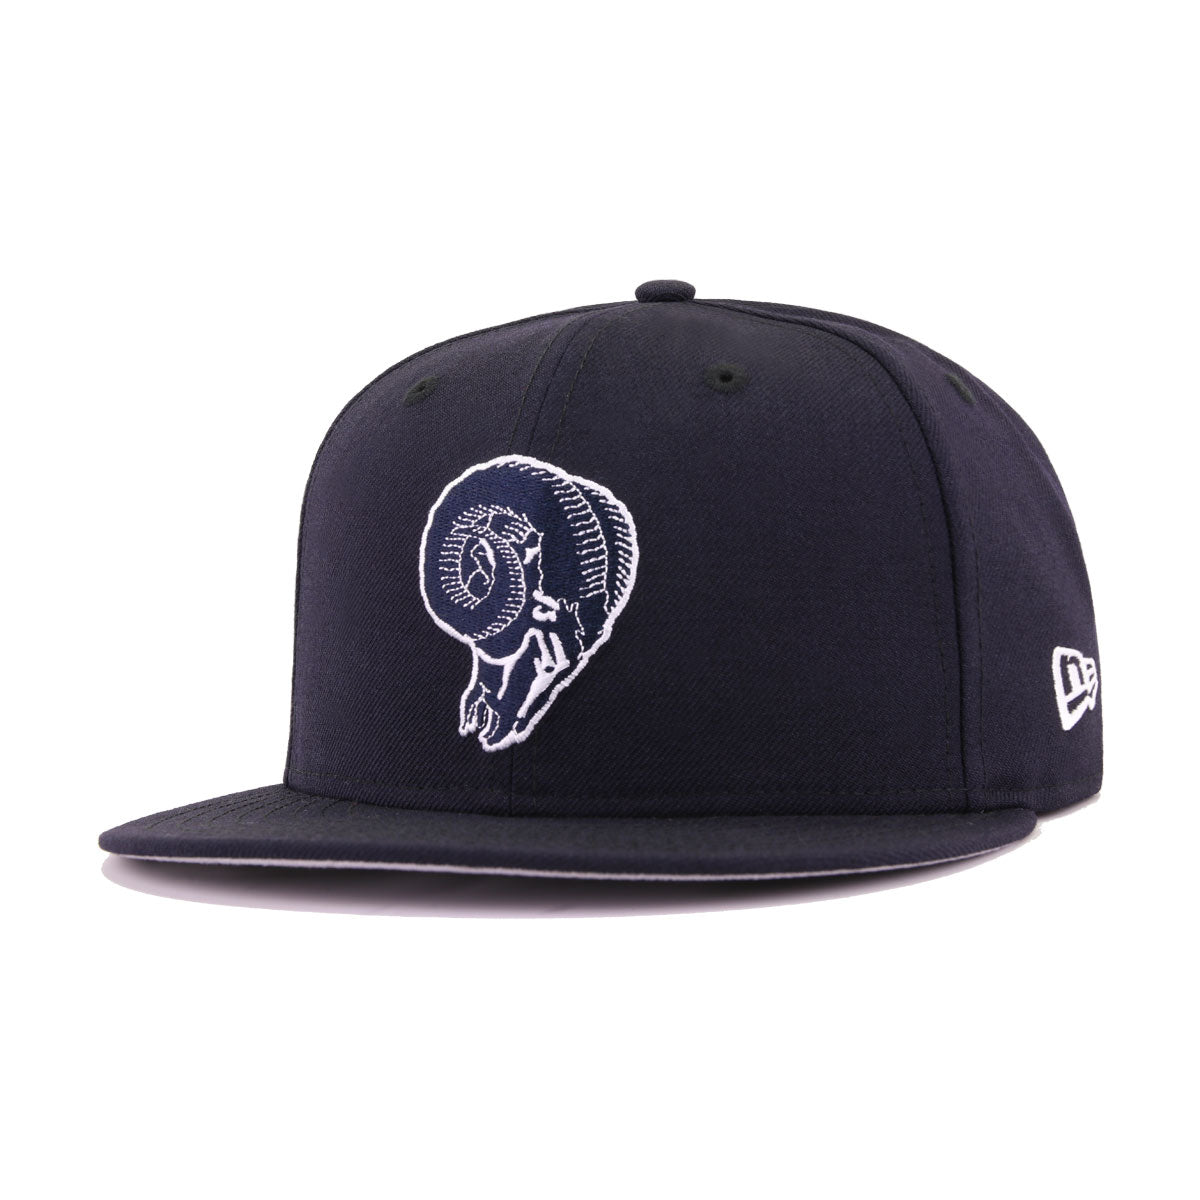 Los Angeles Rams Legacy Navy New Era 9Fifty Snapback